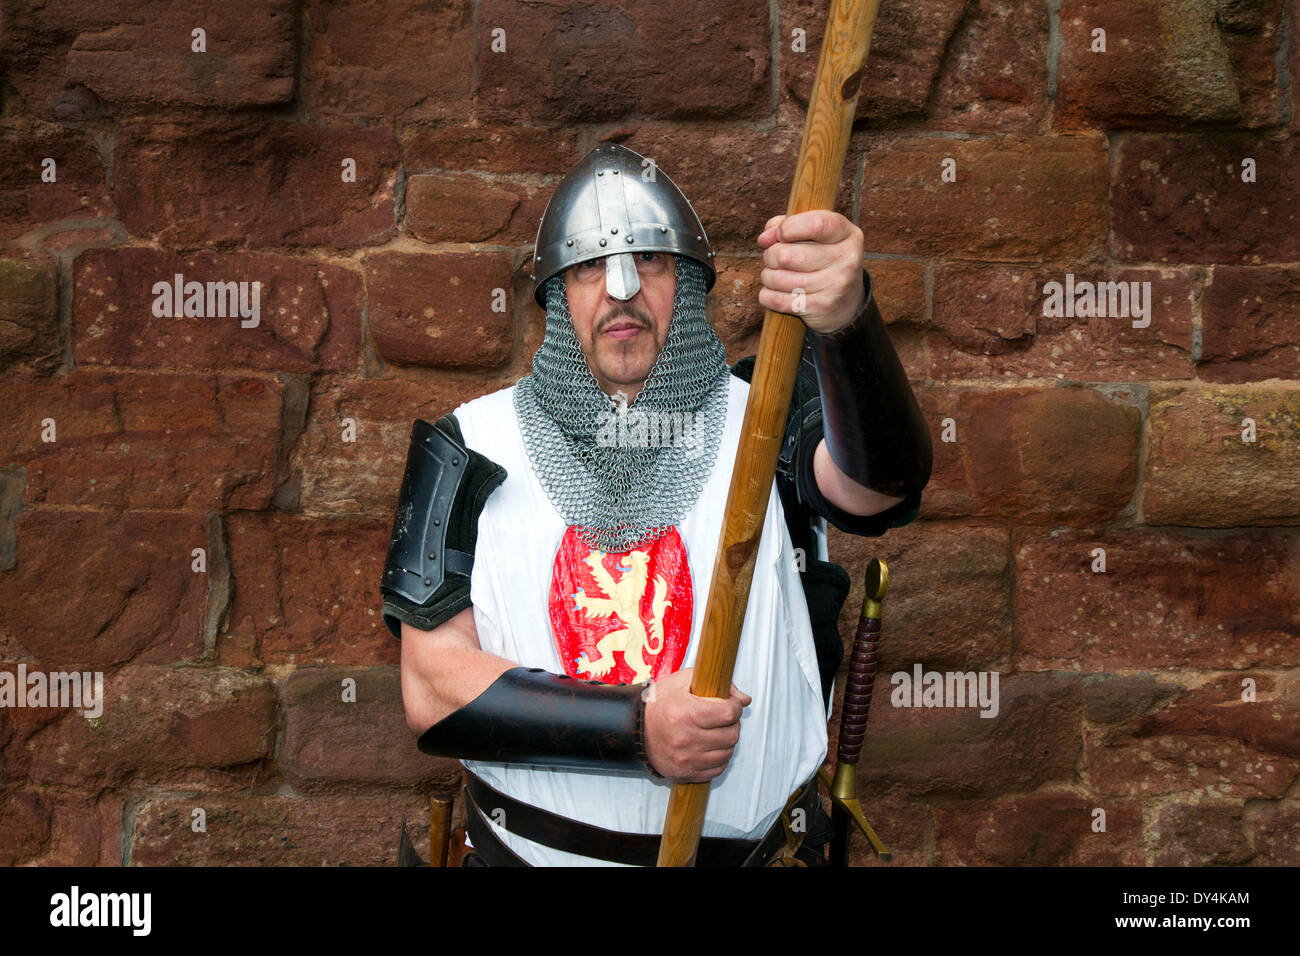 Performers and re-enactors at the Scottish Homecoming event.  'The Declaration of Arbroath' held at Arboath Abbey where the Nobles of Scotland, assembled in the ruins of Arbroath Abbey to commemorate the signing of the Declaration of Arbroath giving Scotland independence in 1320. - Stock Image